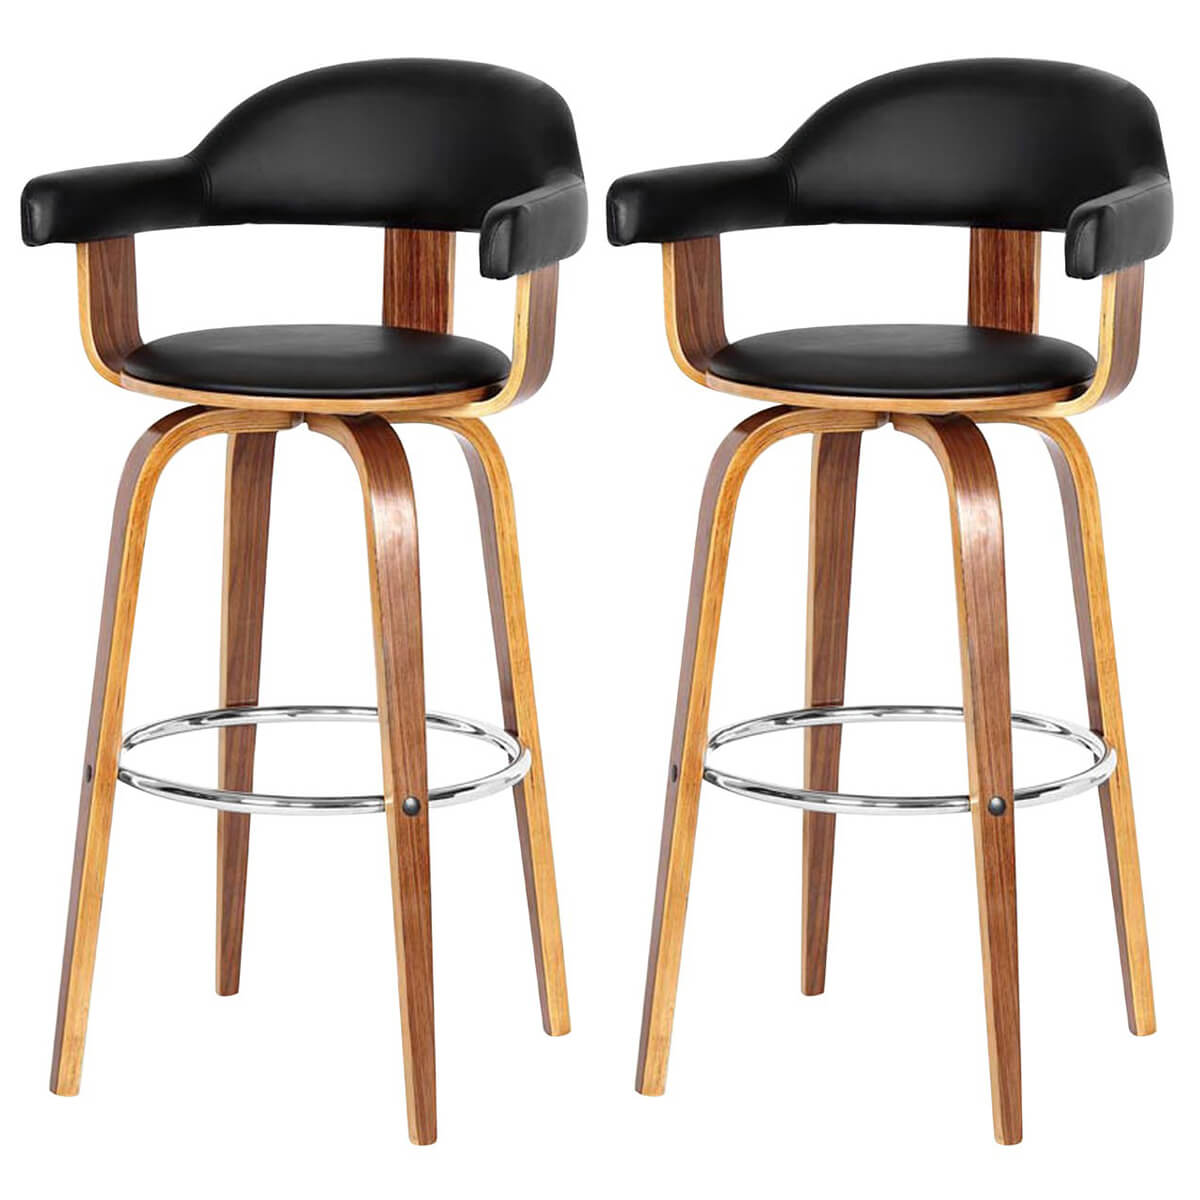 pime pair of black faux leather bar stools walnut base fads. Black Bedroom Furniture Sets. Home Design Ideas